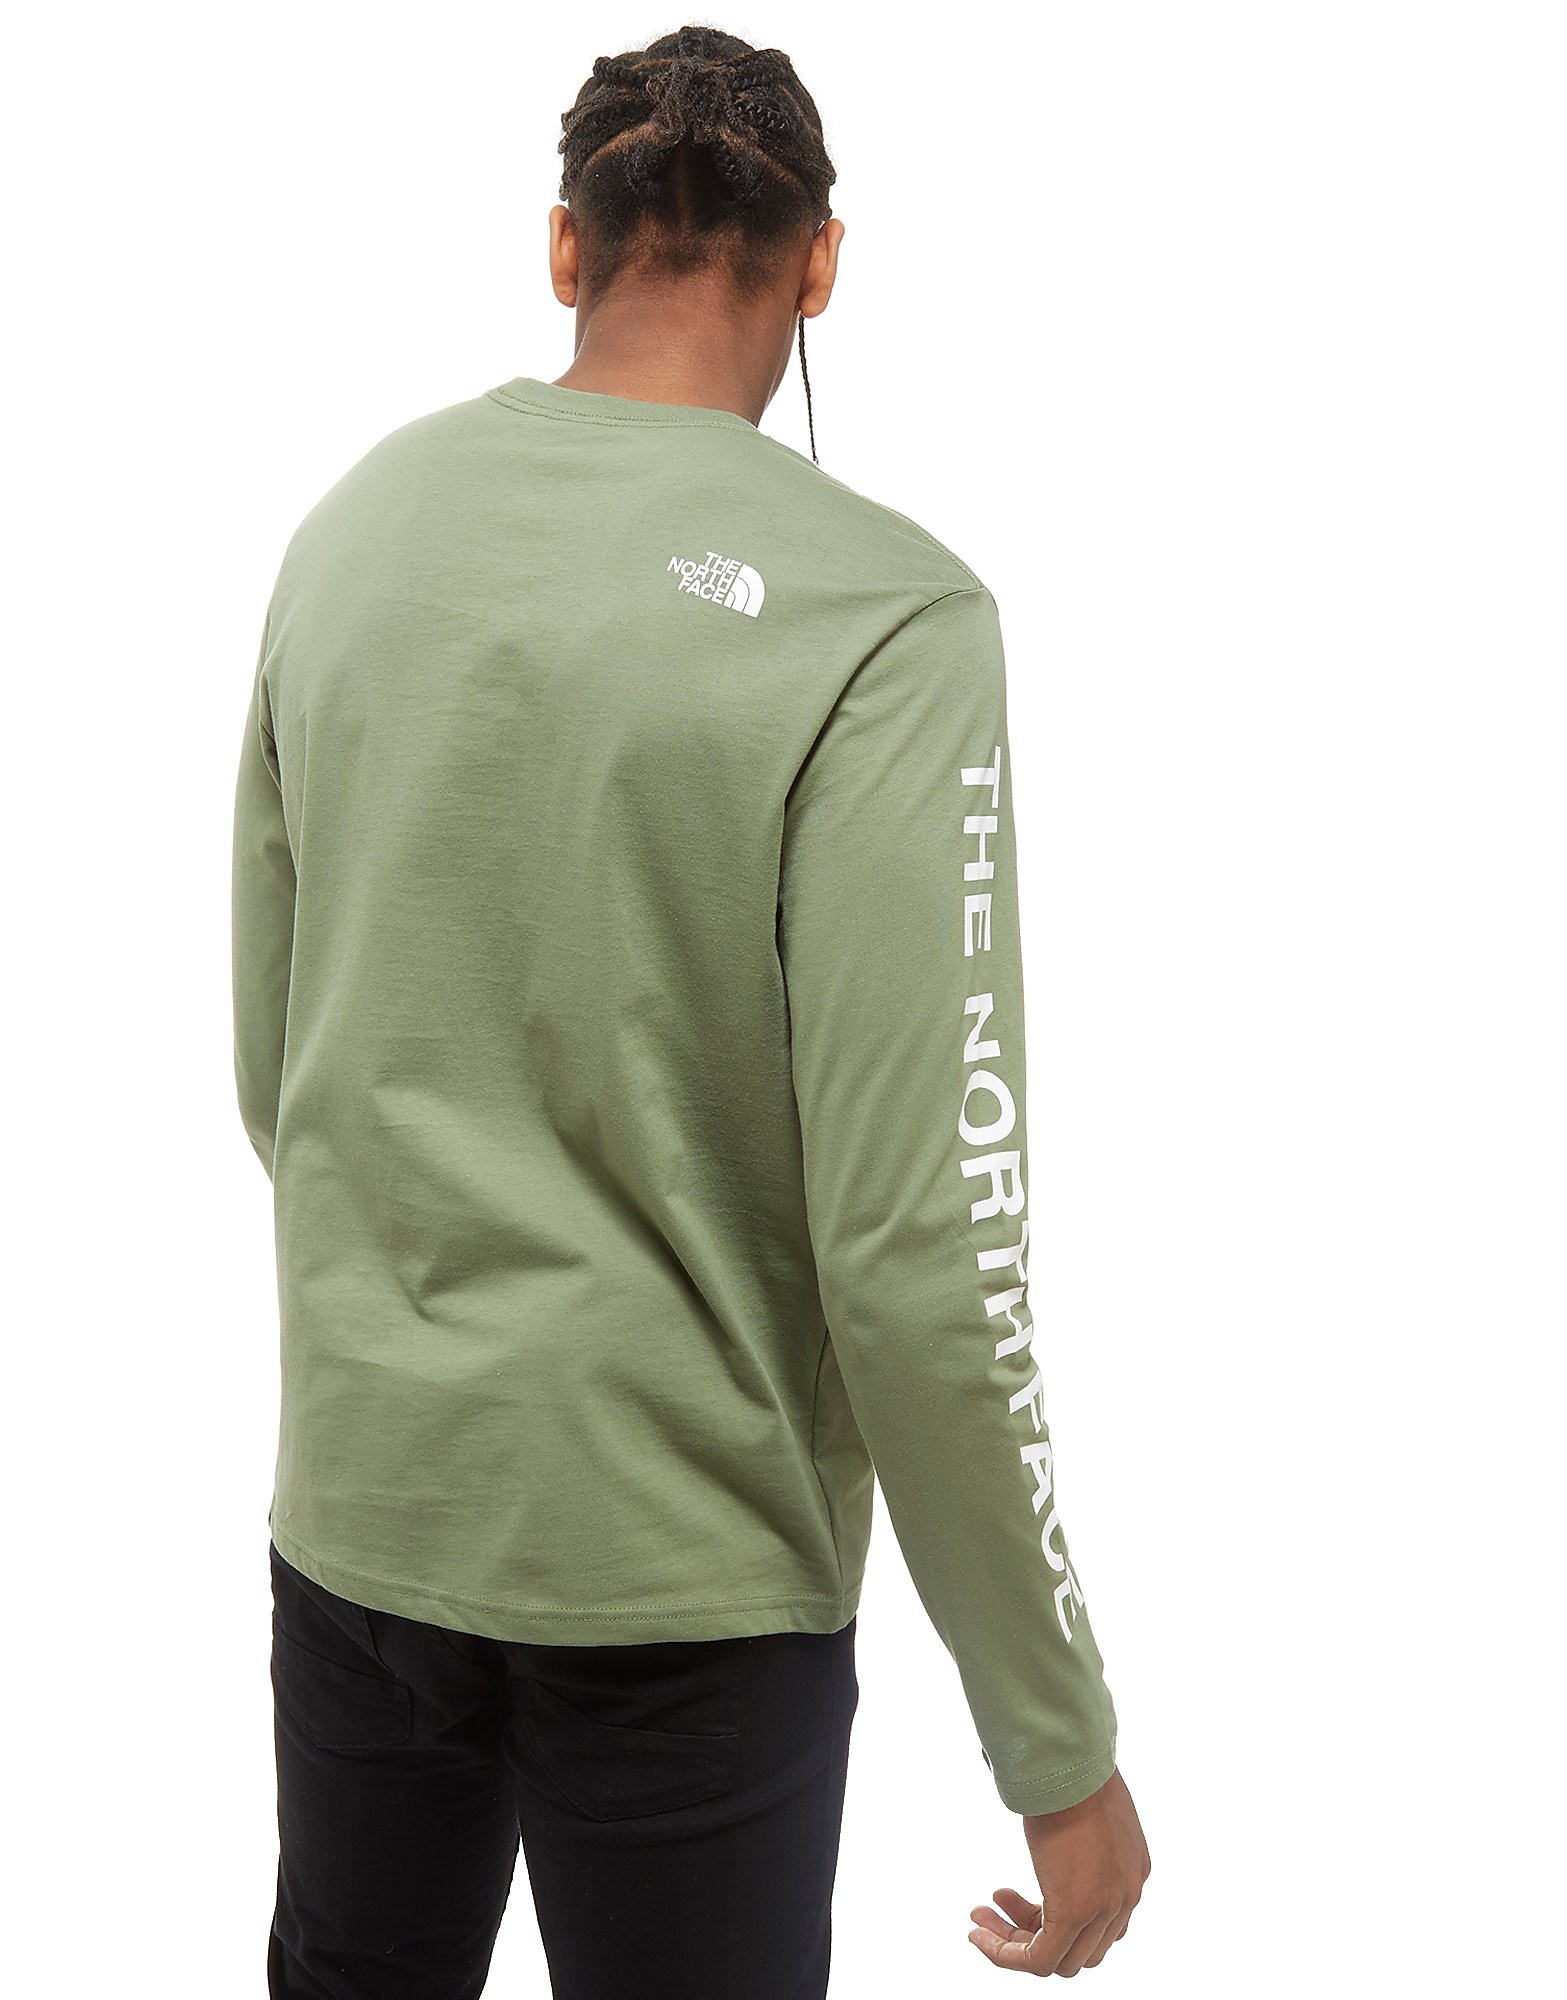 The North Face Long Sleeve Printed T-Shirt